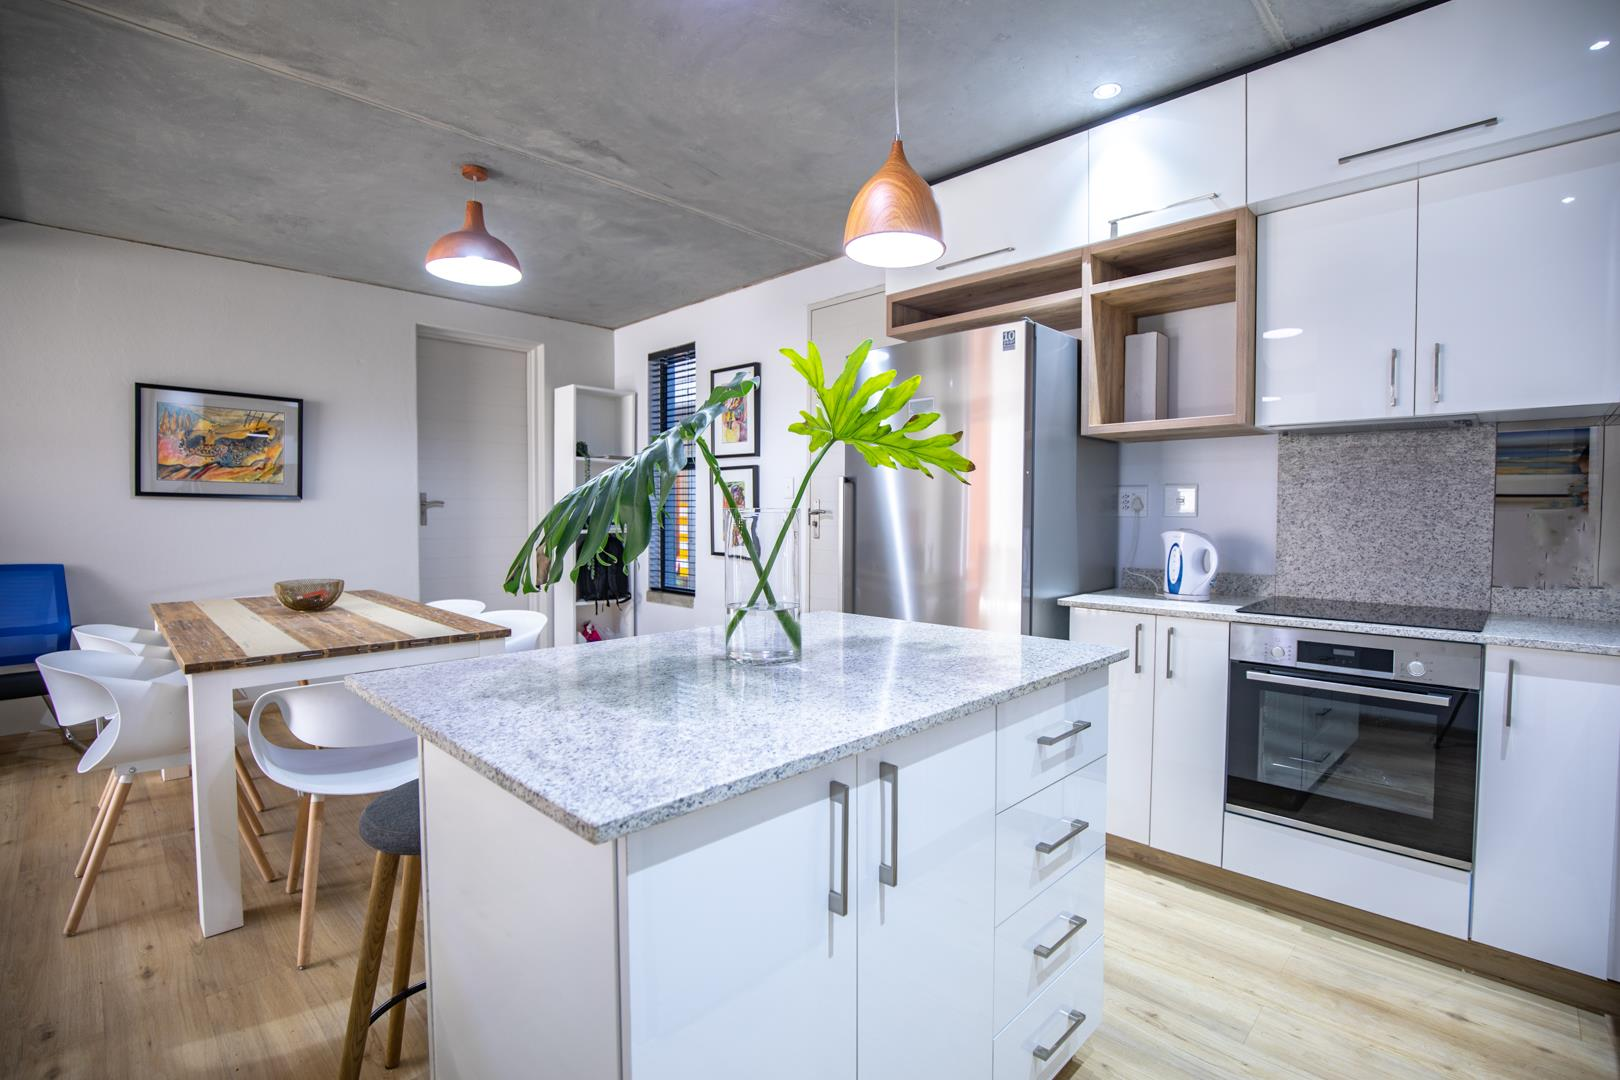 2 Bedroom Apartment / Flat For Sale in Brooklyn